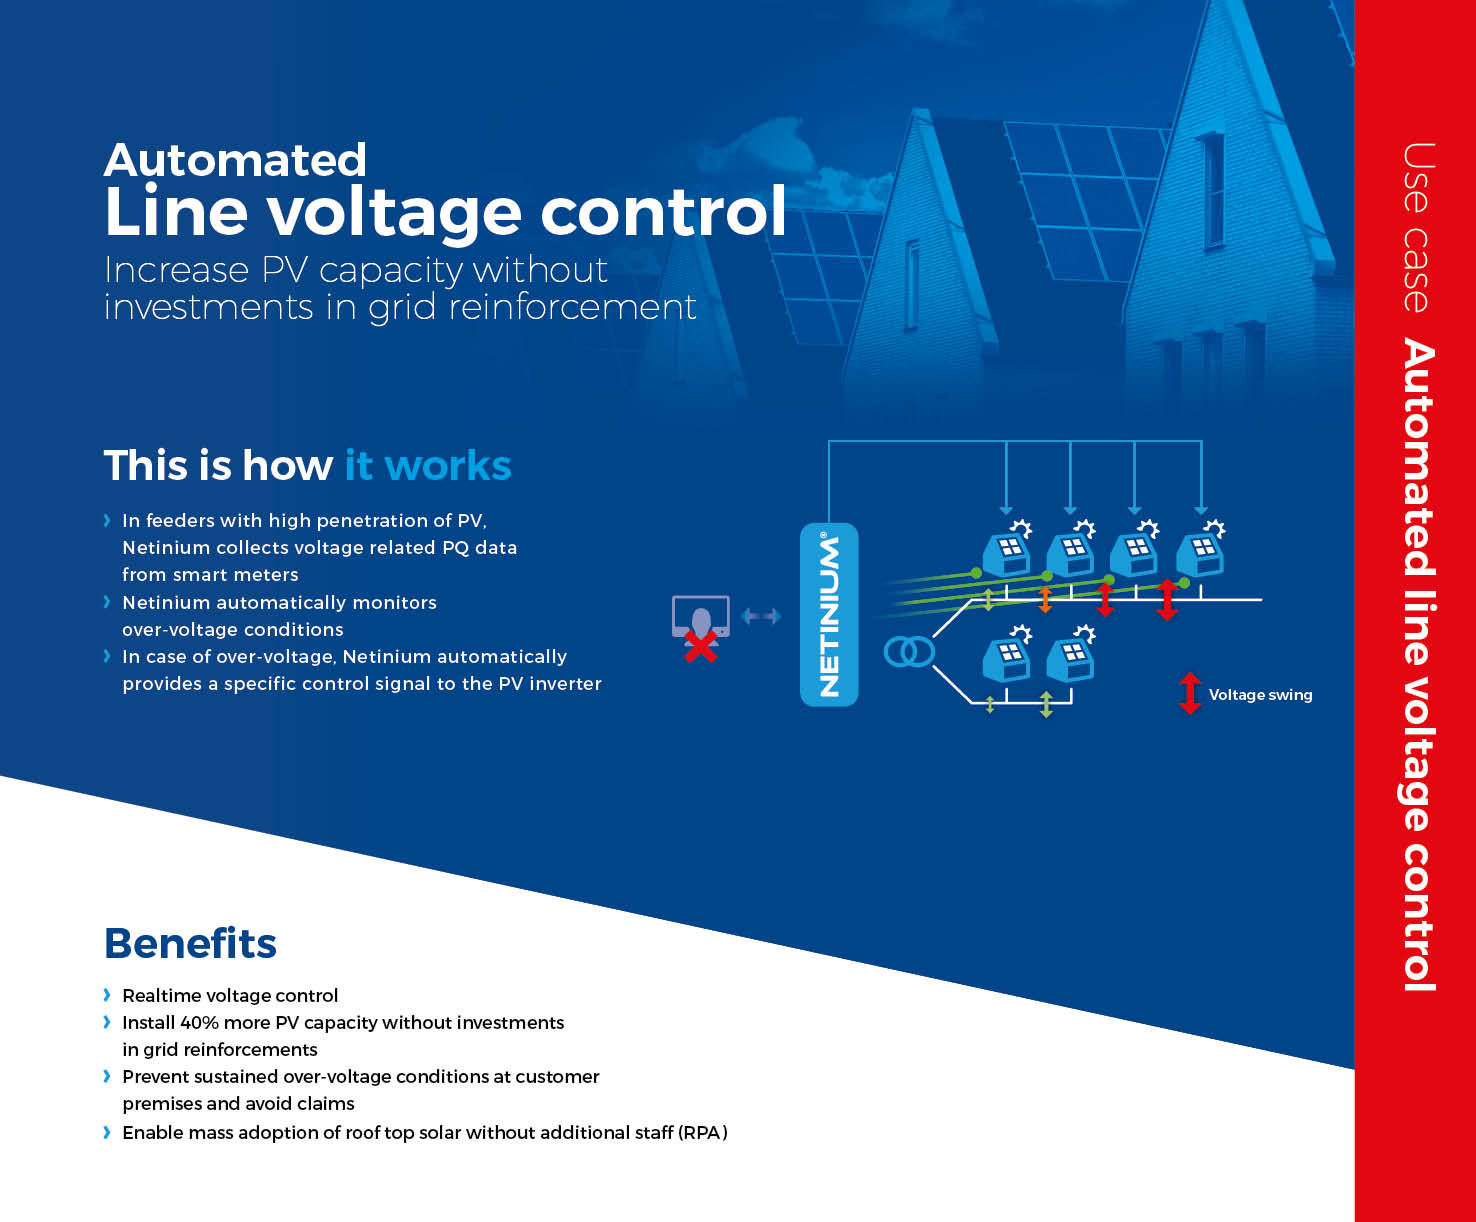 Automated Line voltage control